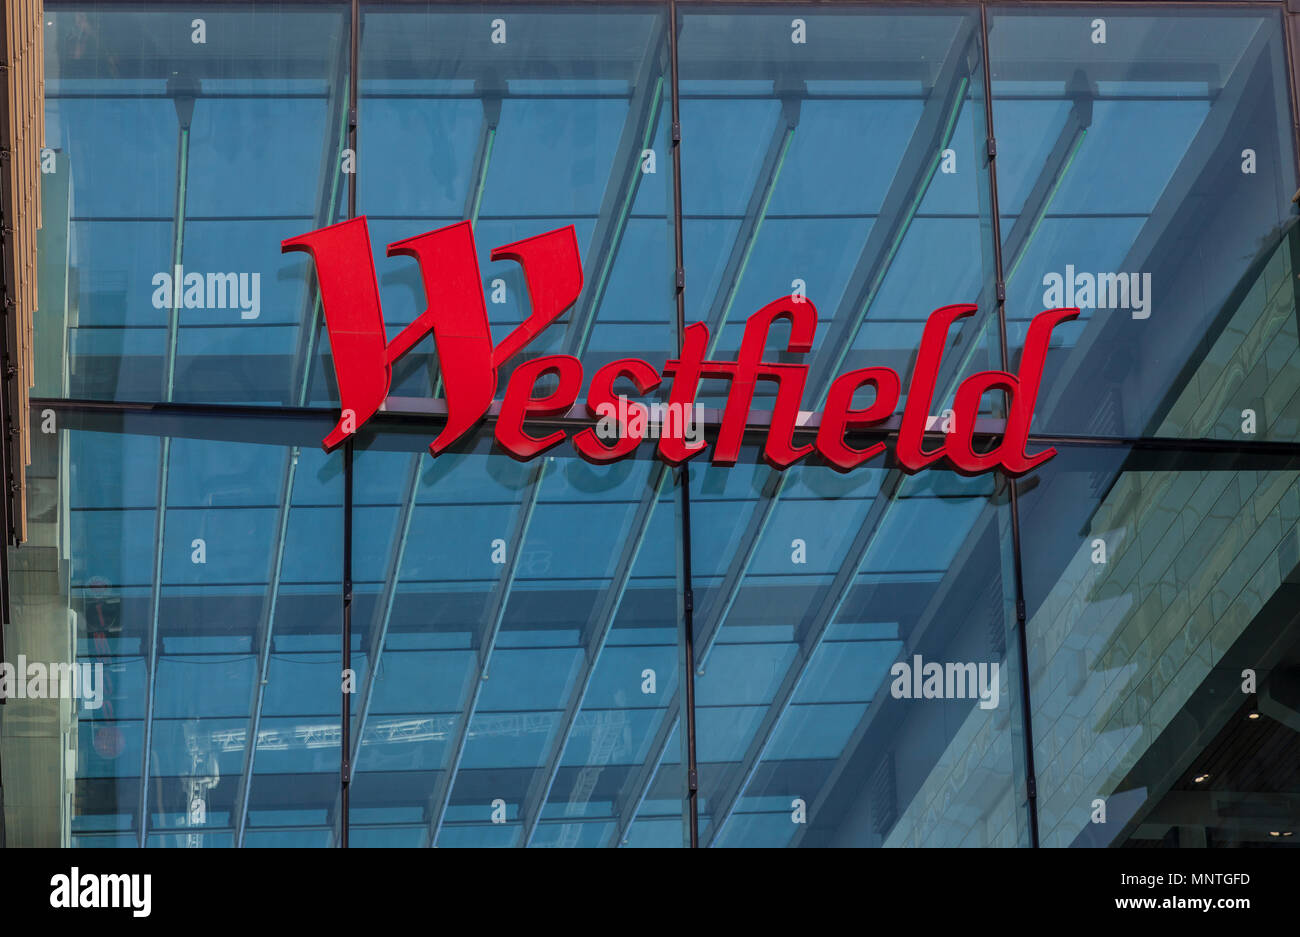 Westfield shopping centre at Stratford, London - Stock Image